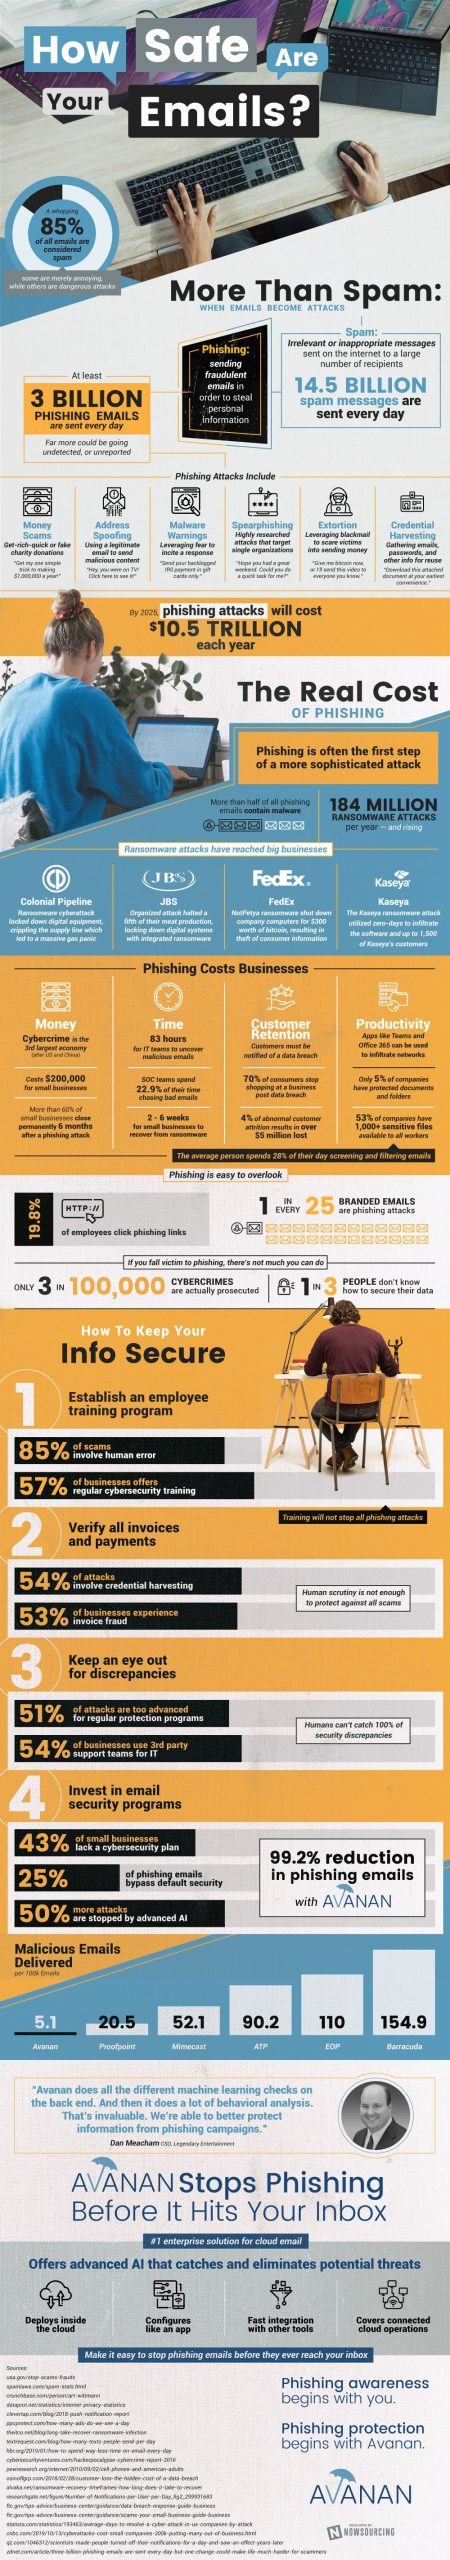 How Safe Are Your Emails? [Infographic]